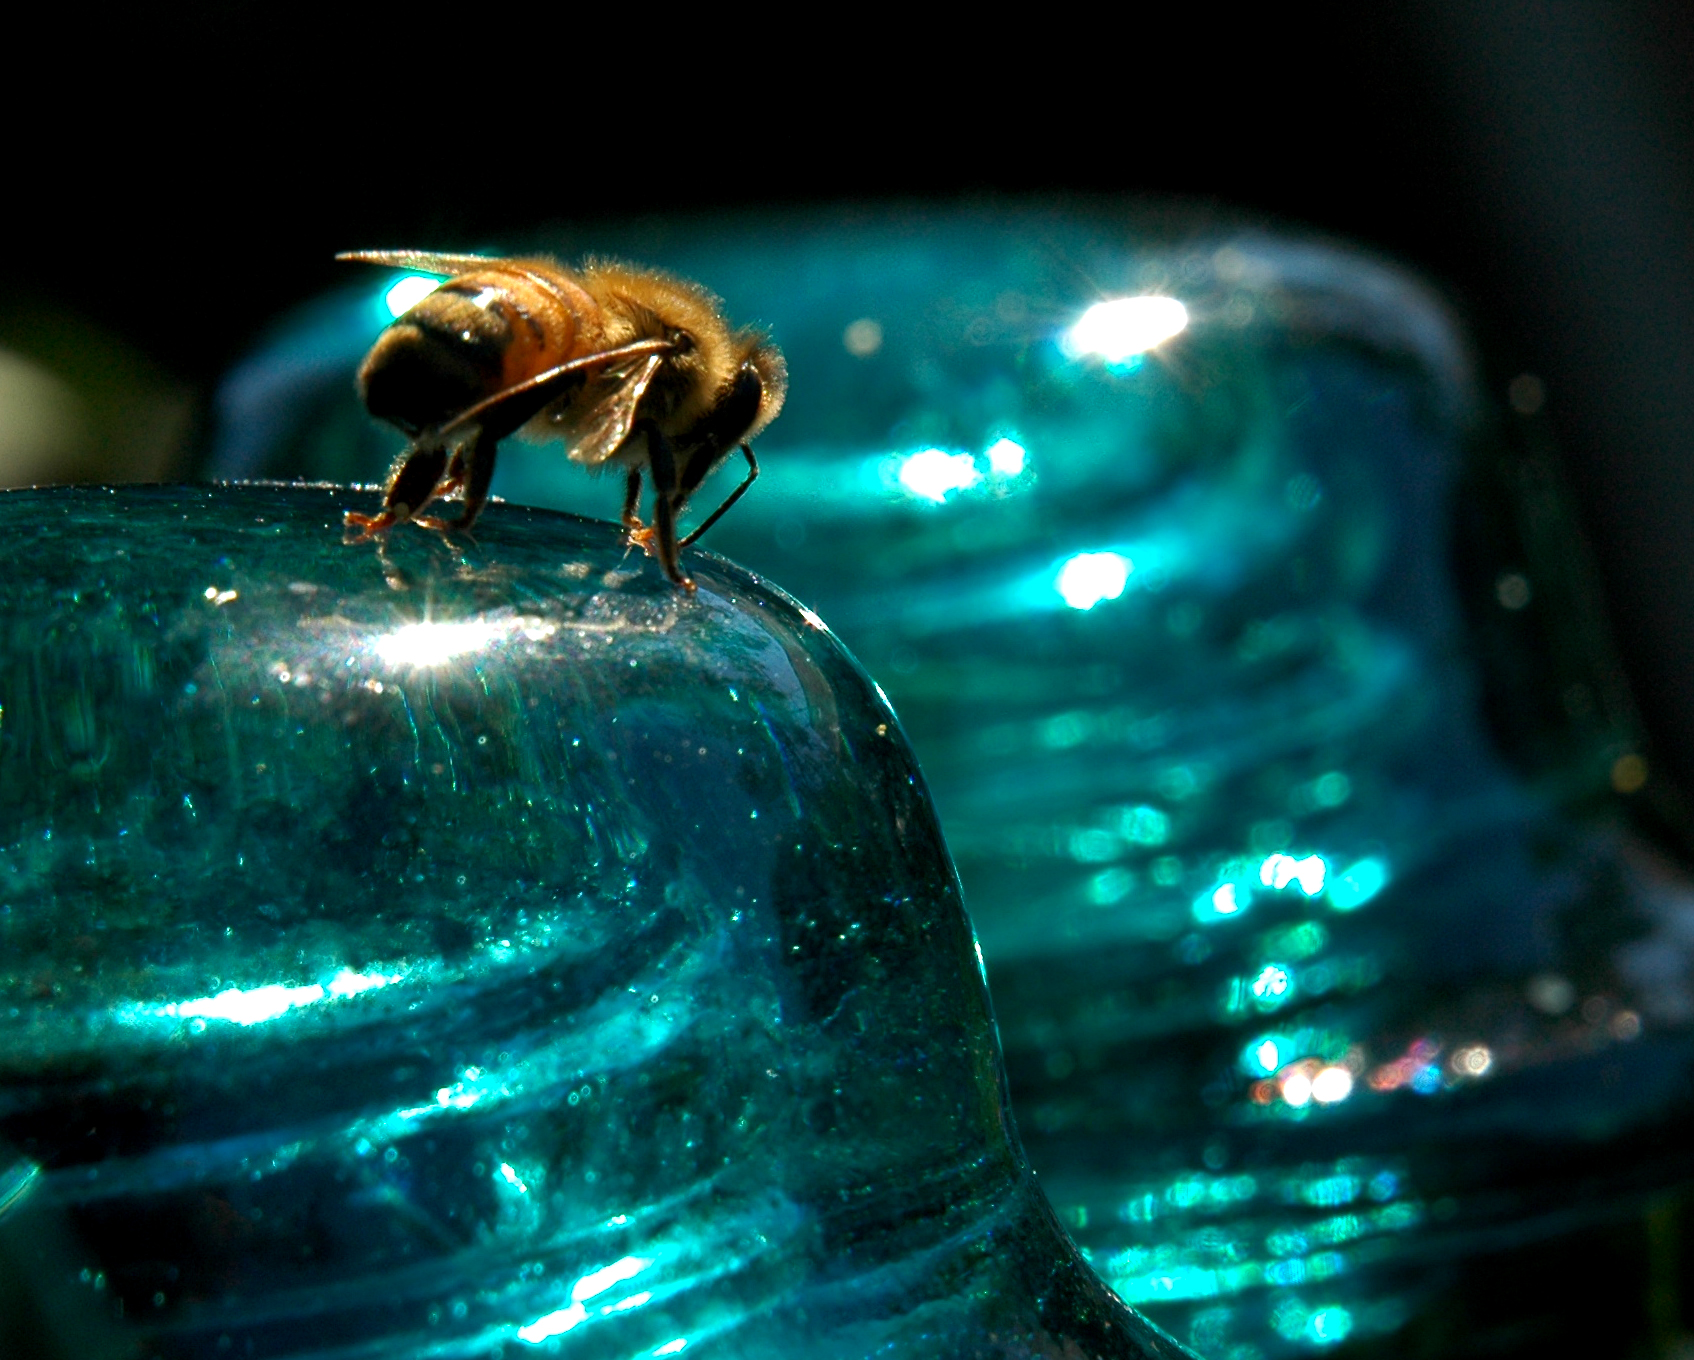 What Do Bees From Drink Sugar Water